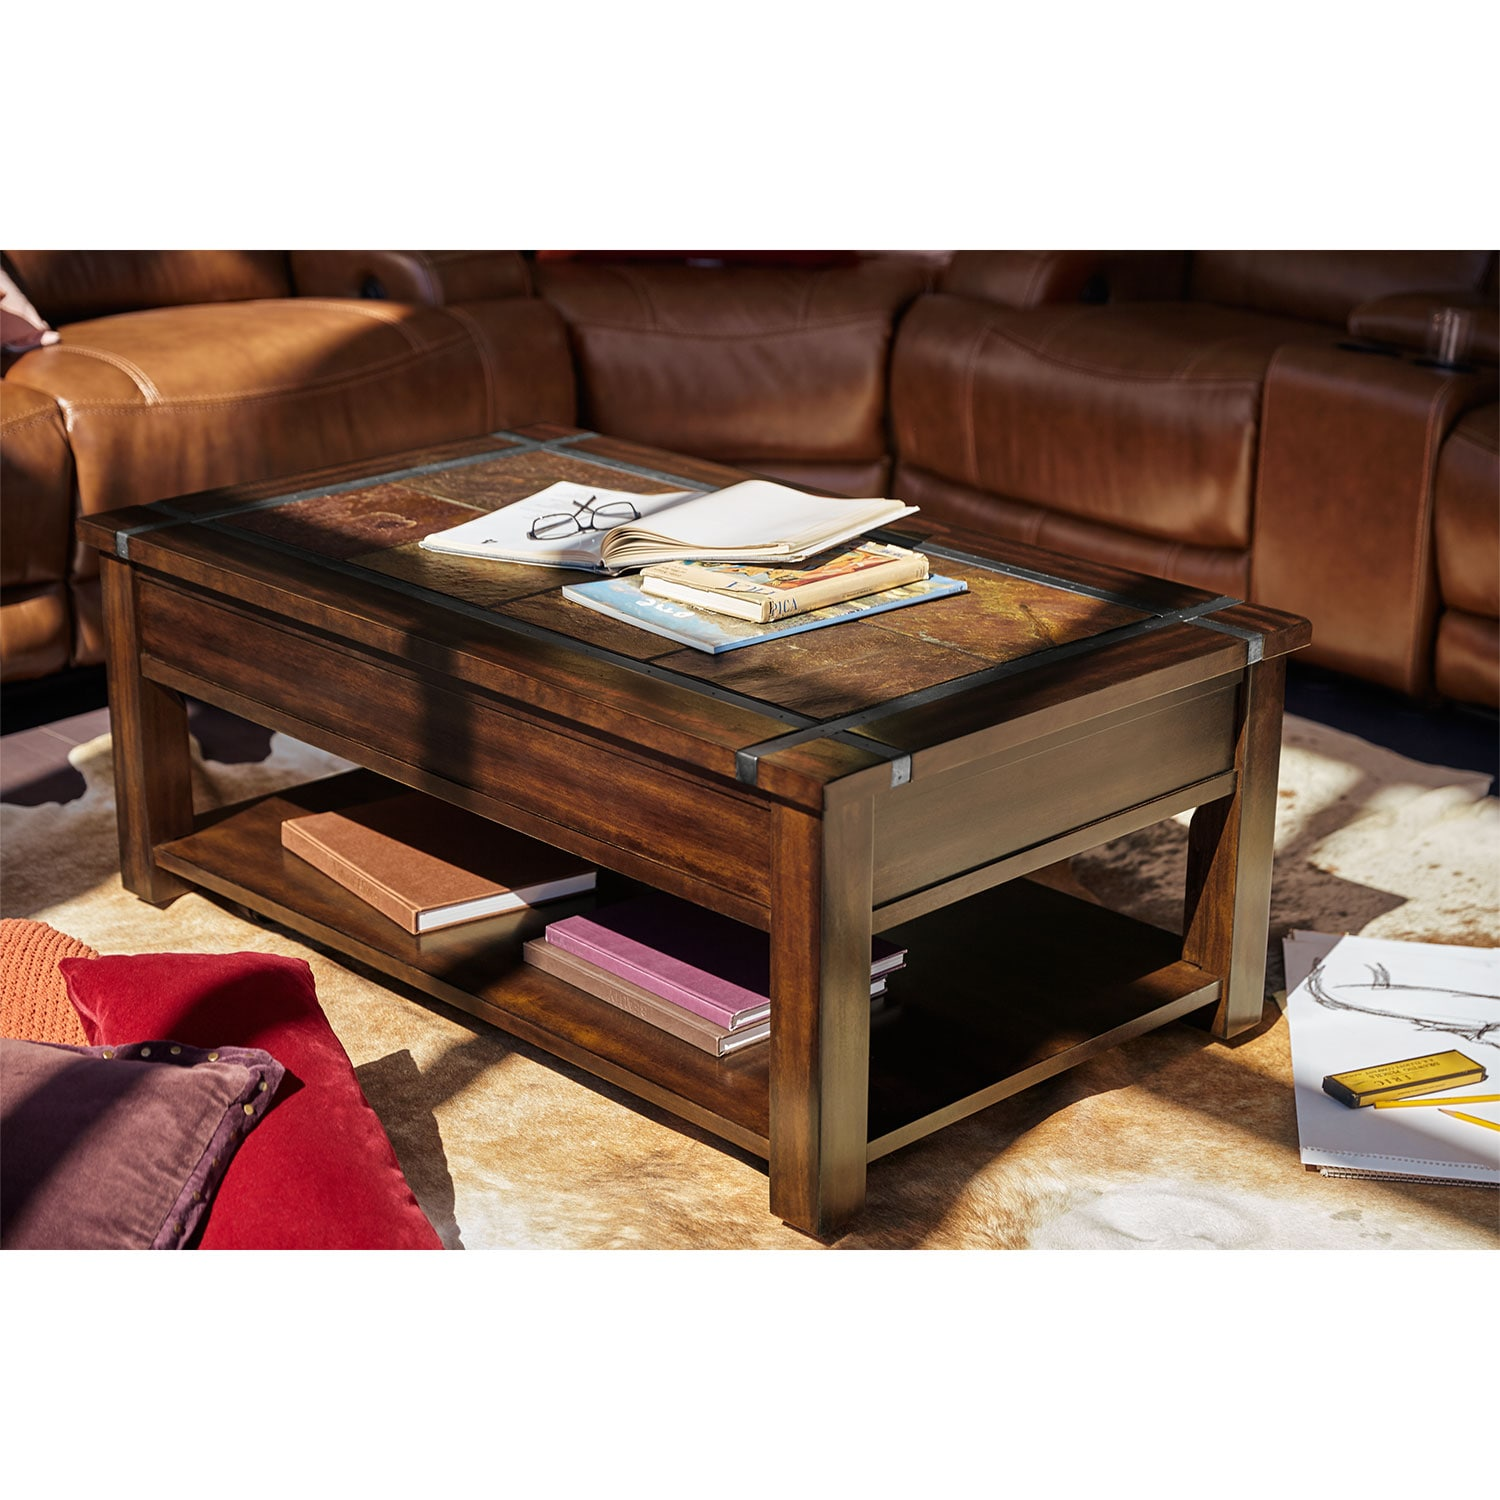 Slate Ridge LiftTop Cocktail Table Cherry Value City